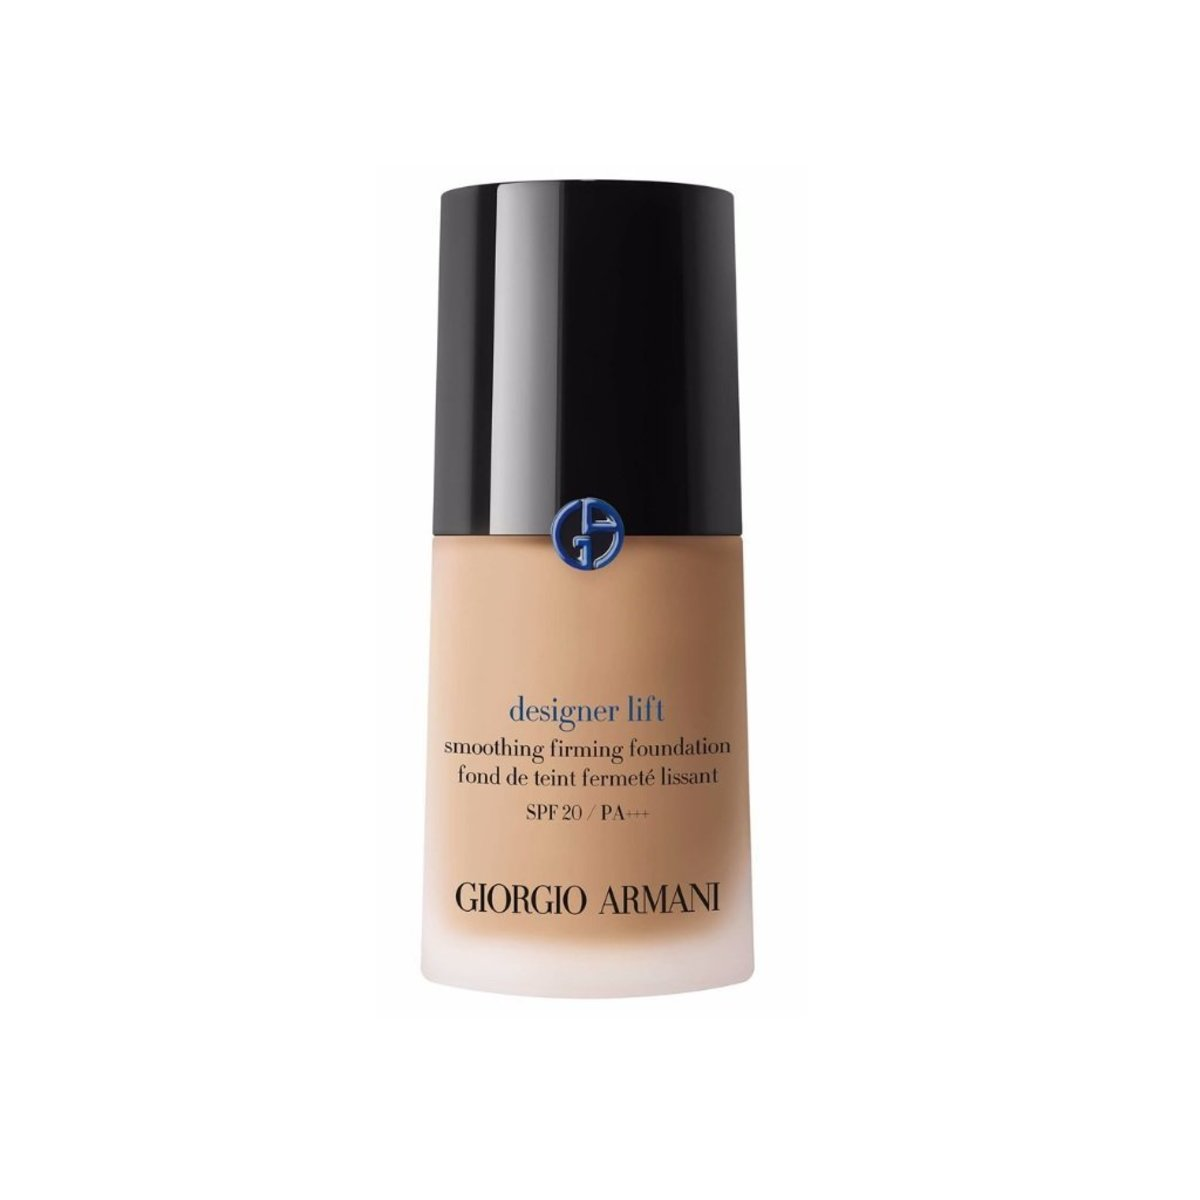 Designer Lift Smoothing Firming Foundation SPF20 30ml #02  (parallel good)